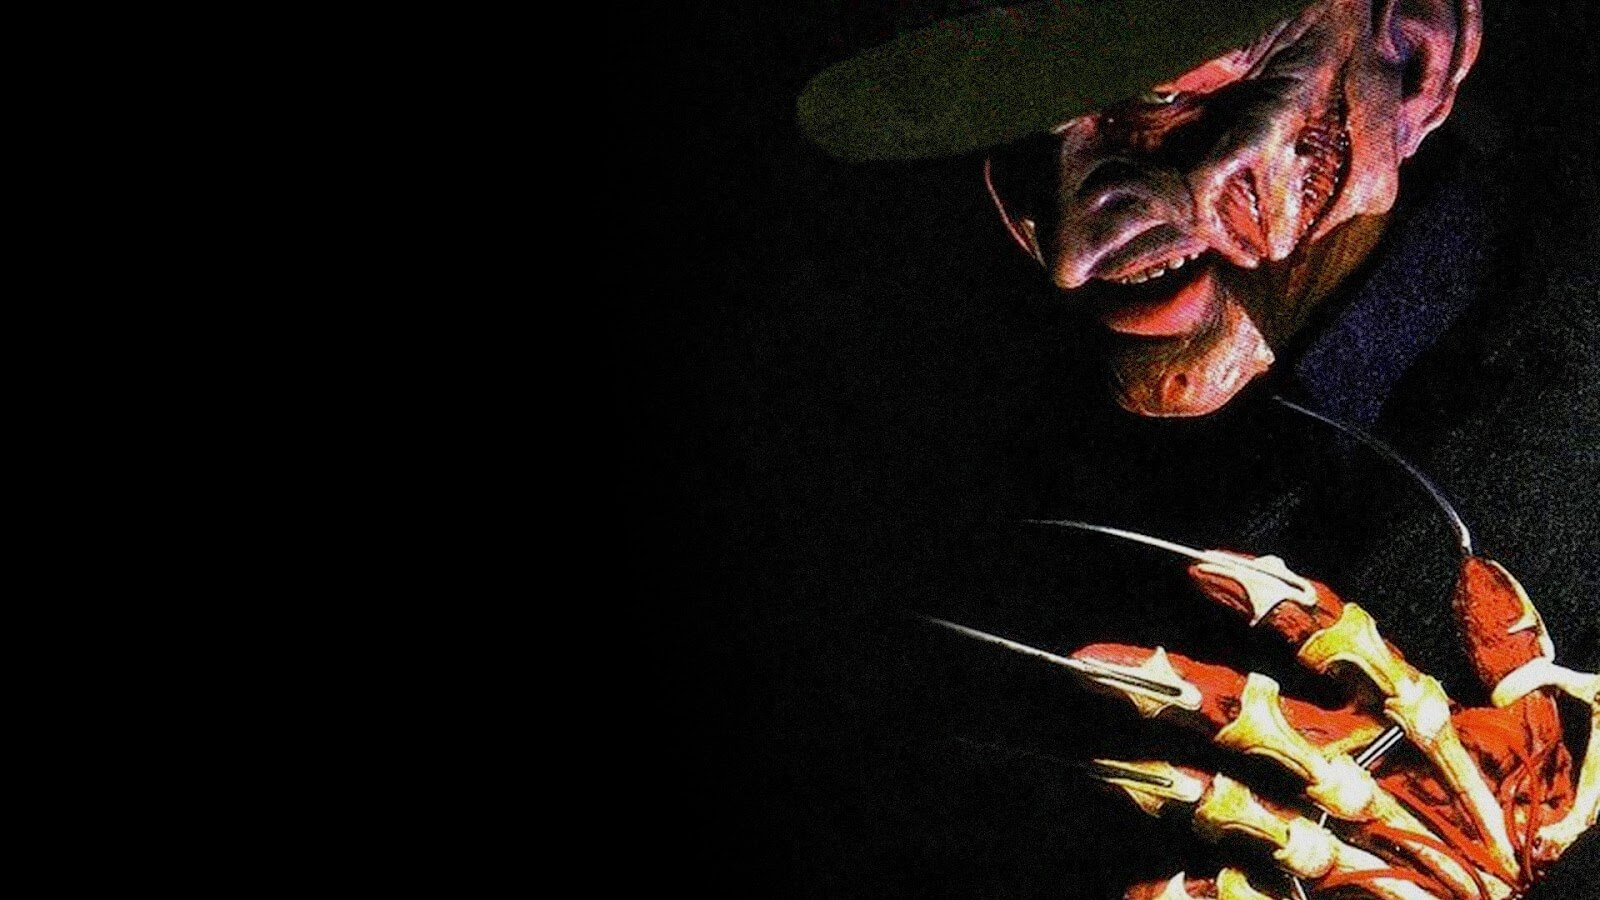 What are the Best Slasher Films of the 70s and 80s